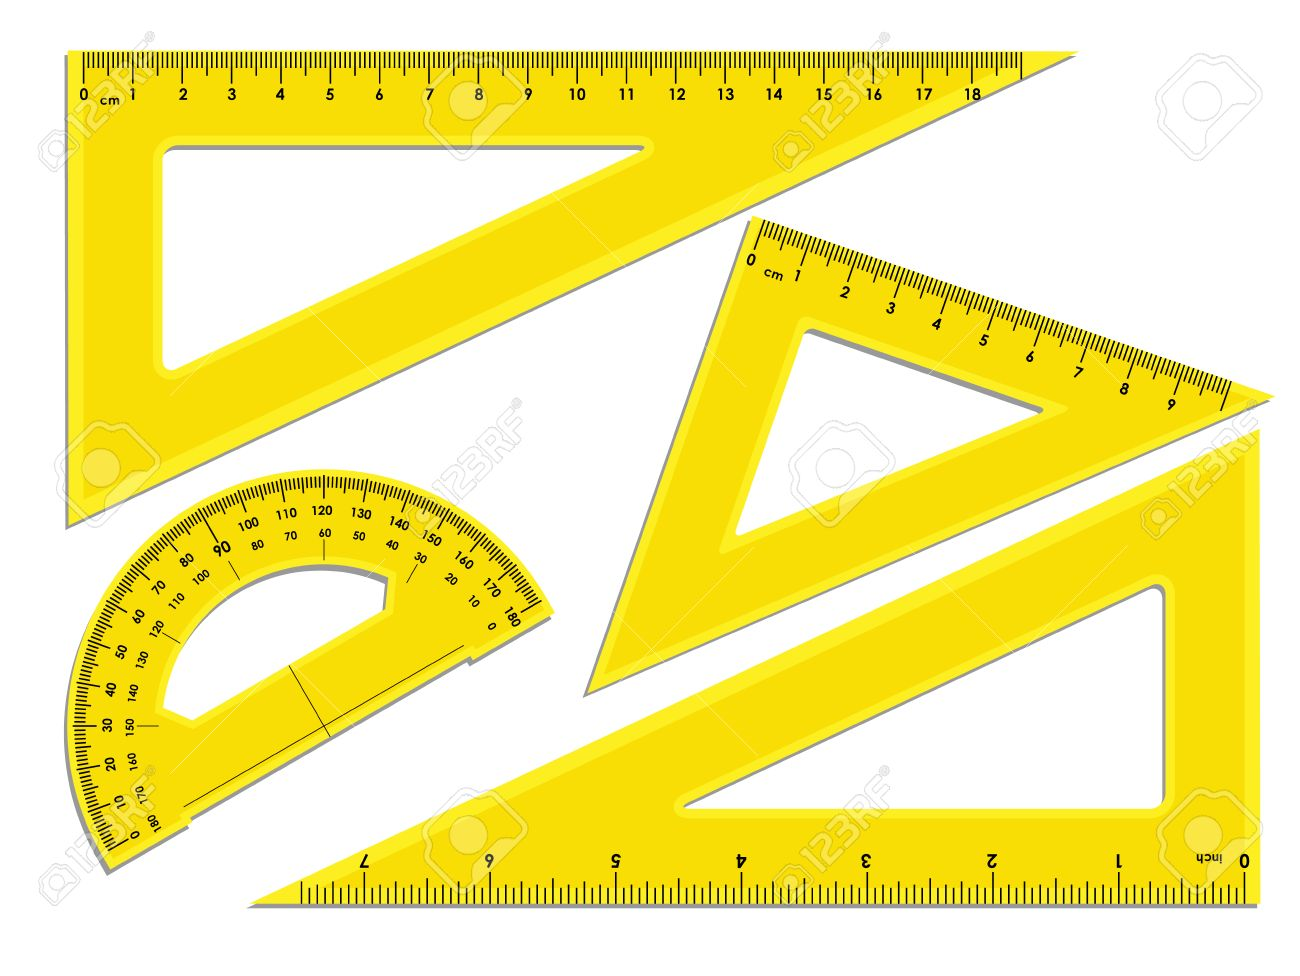 Triangle rulers and protractor rulers marked in centimeters triangle rulers and protractor rulers marked in centimeters and inches stock vector 58039747 buycottarizona Image collections